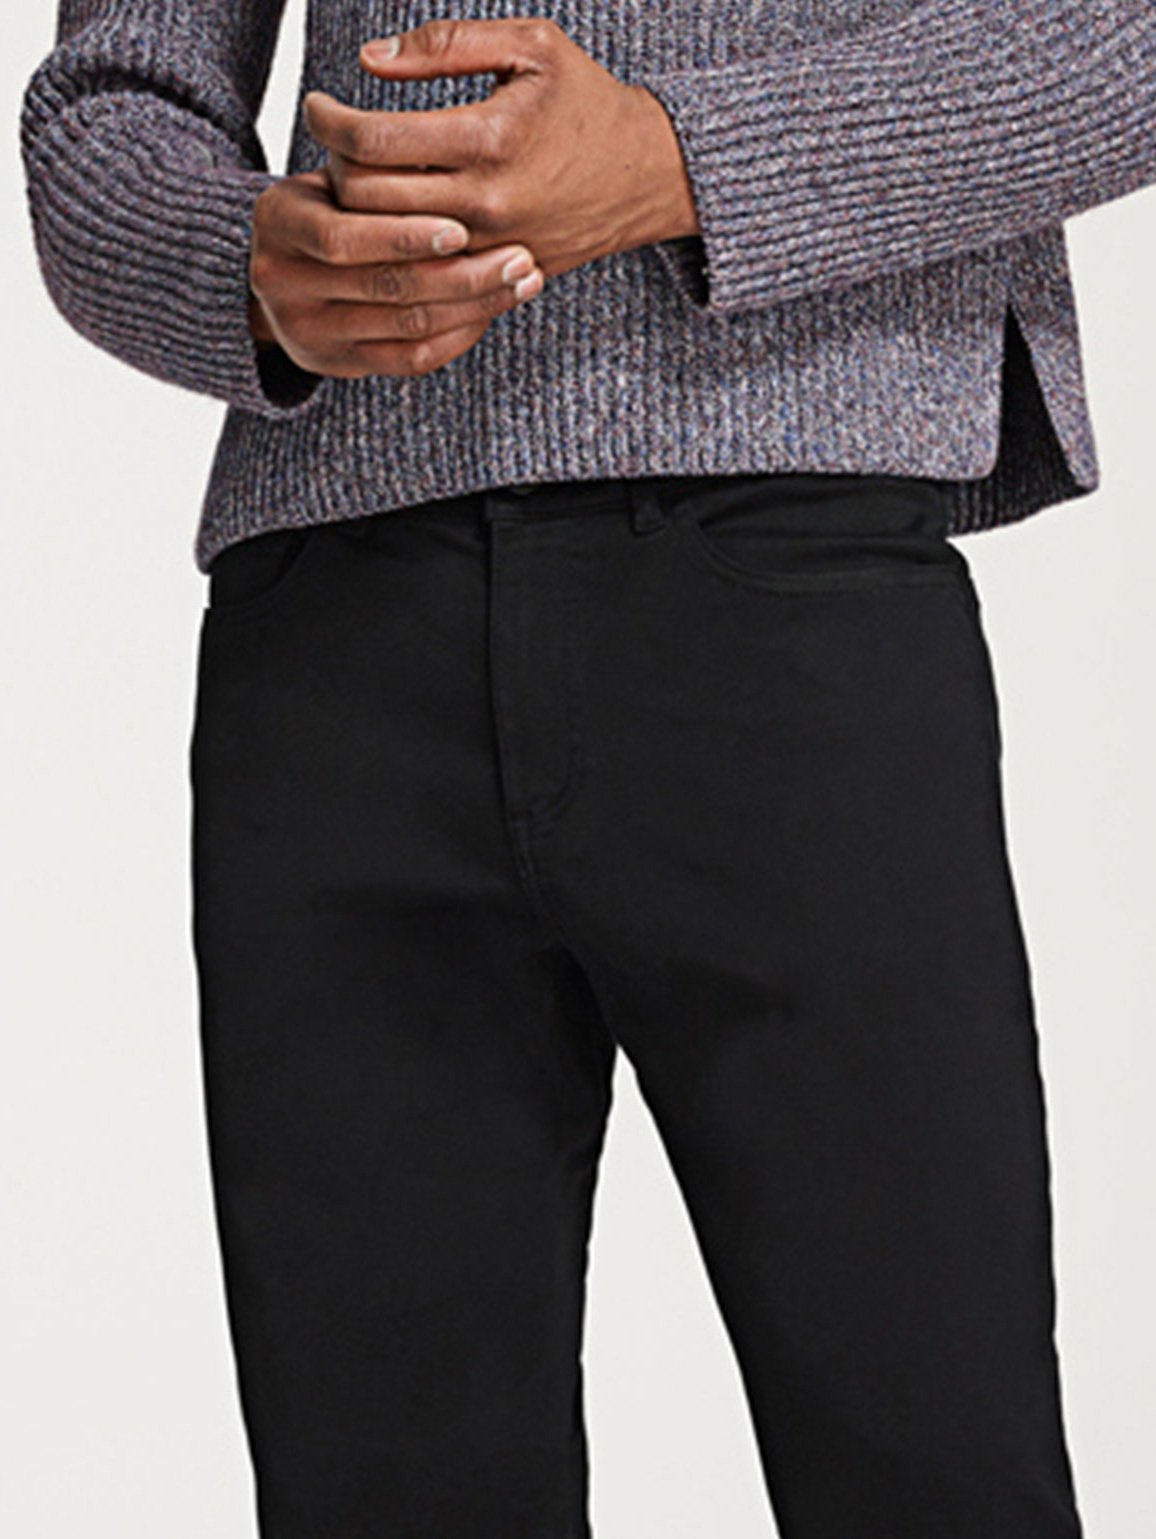 Men - Black Straight Denim - Avery Modern Straight Coal - DL1961